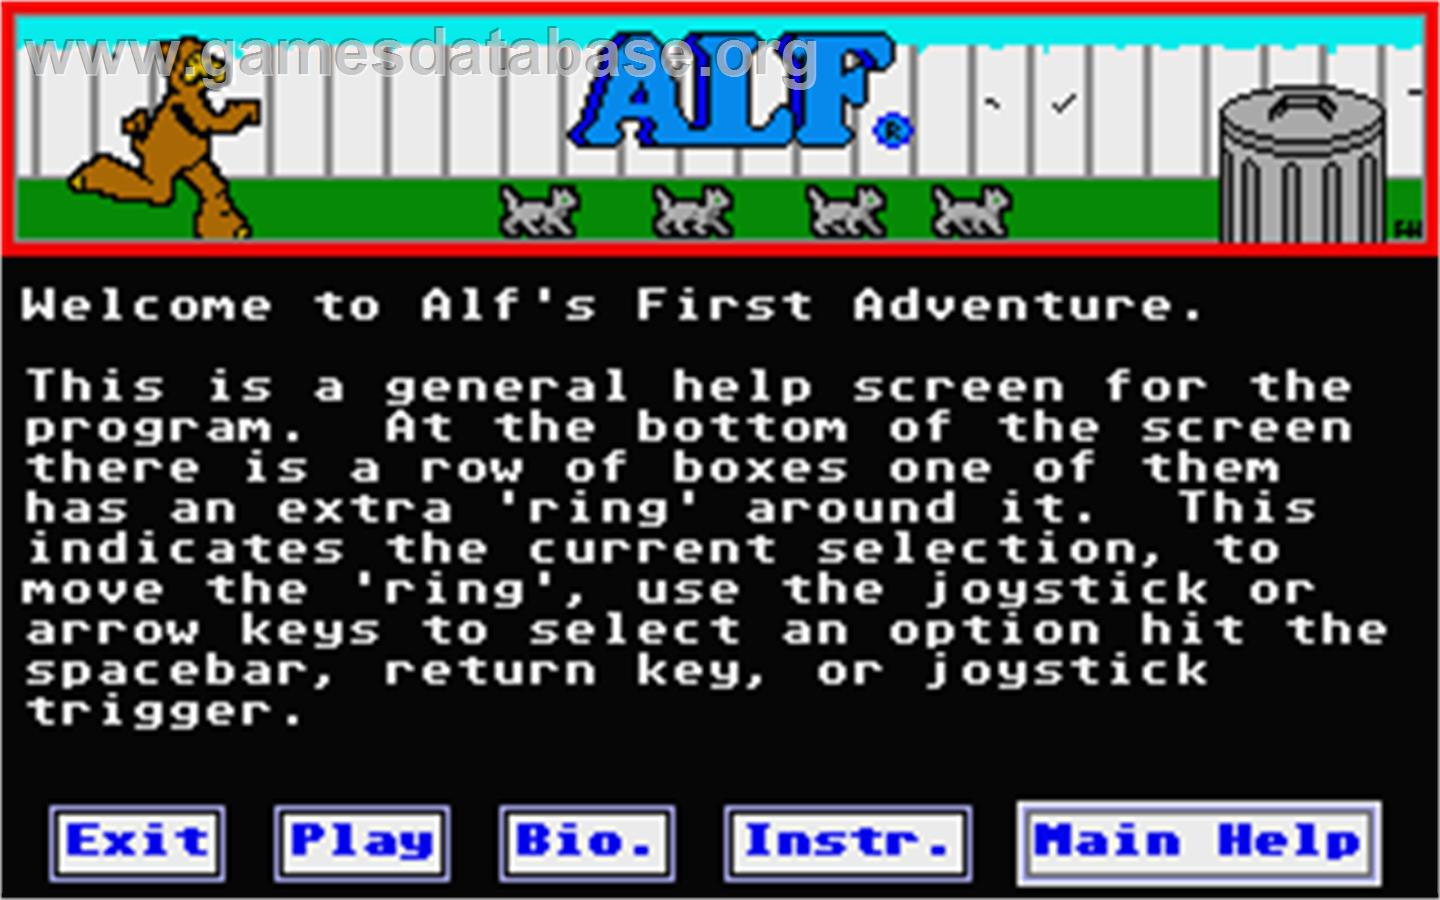 game image of Ruff and Reddy in the Space Adventure on the Atari ST